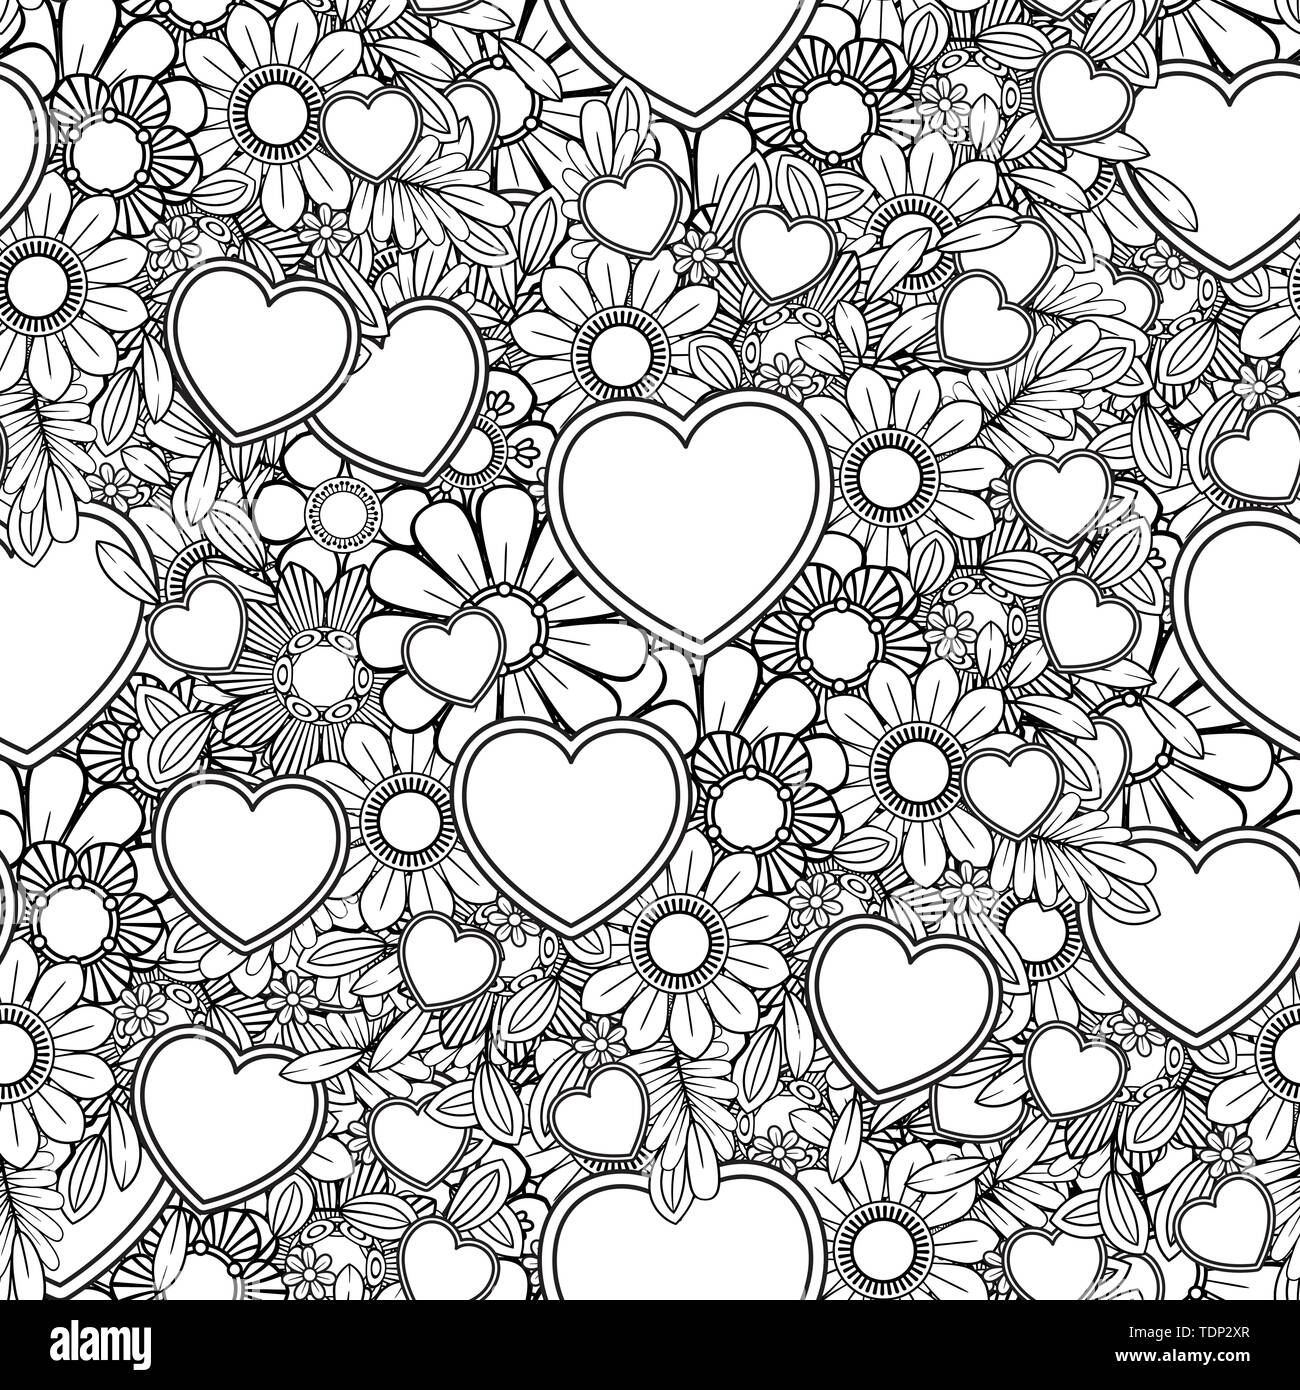 Valentine's Day Coloring Flowers - Violets are Blue Coloring Page ... | 1390x1300